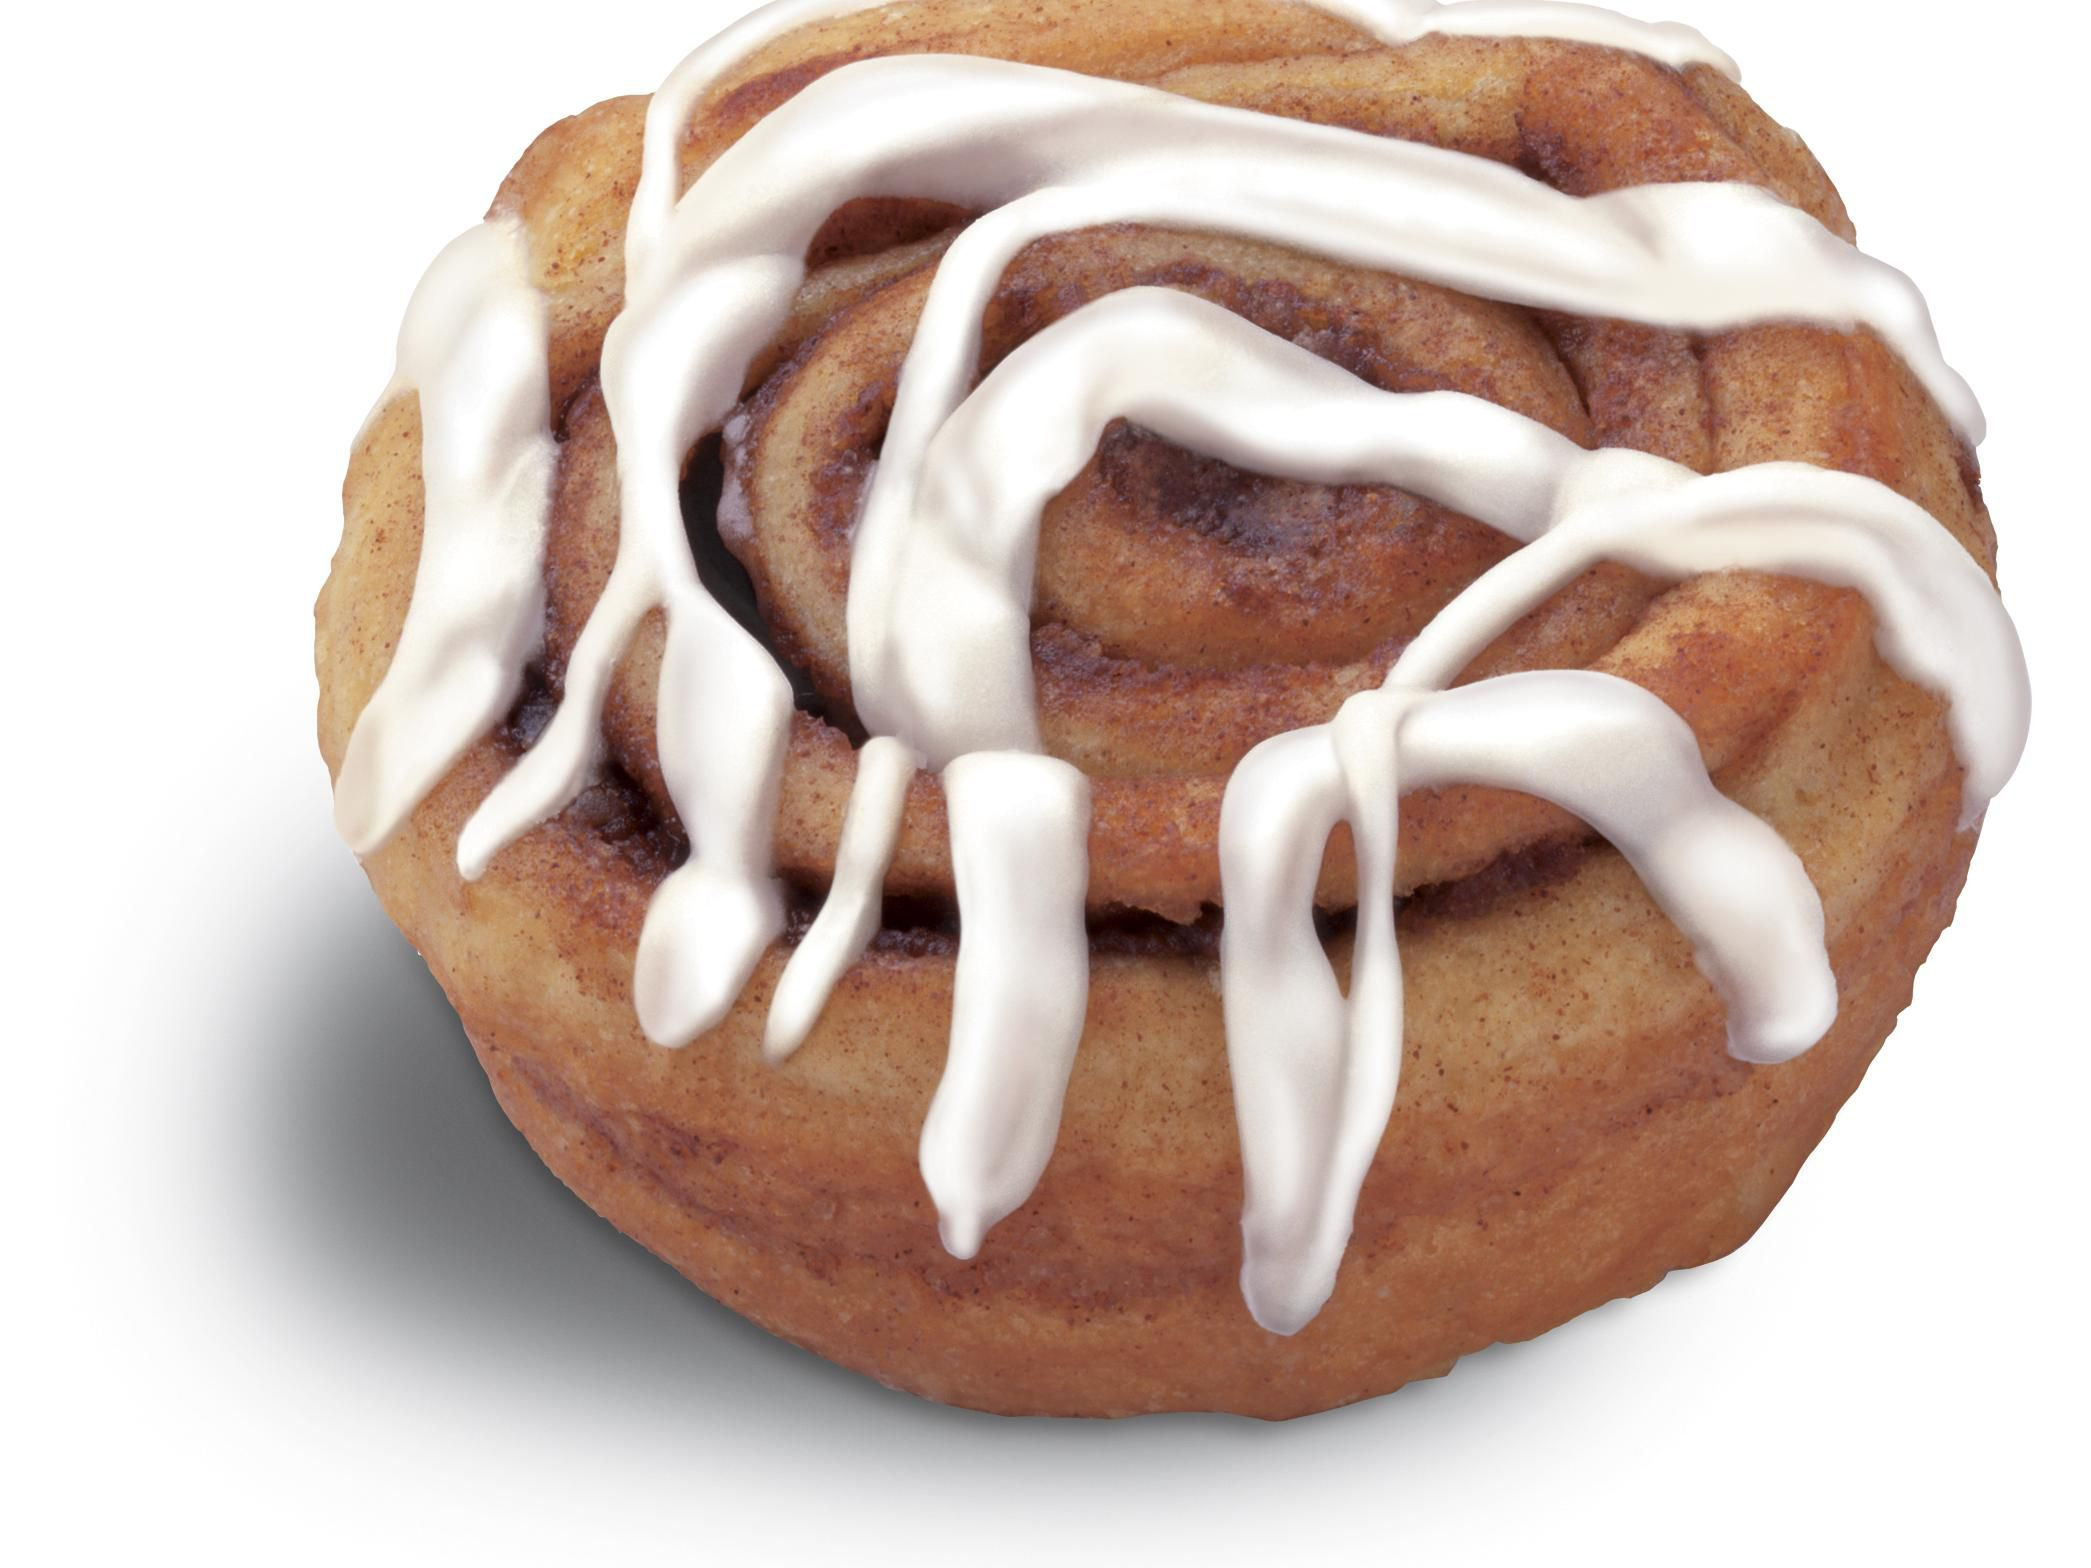 Enjoy our famous Warm Cinnamon Buns with your breakfast